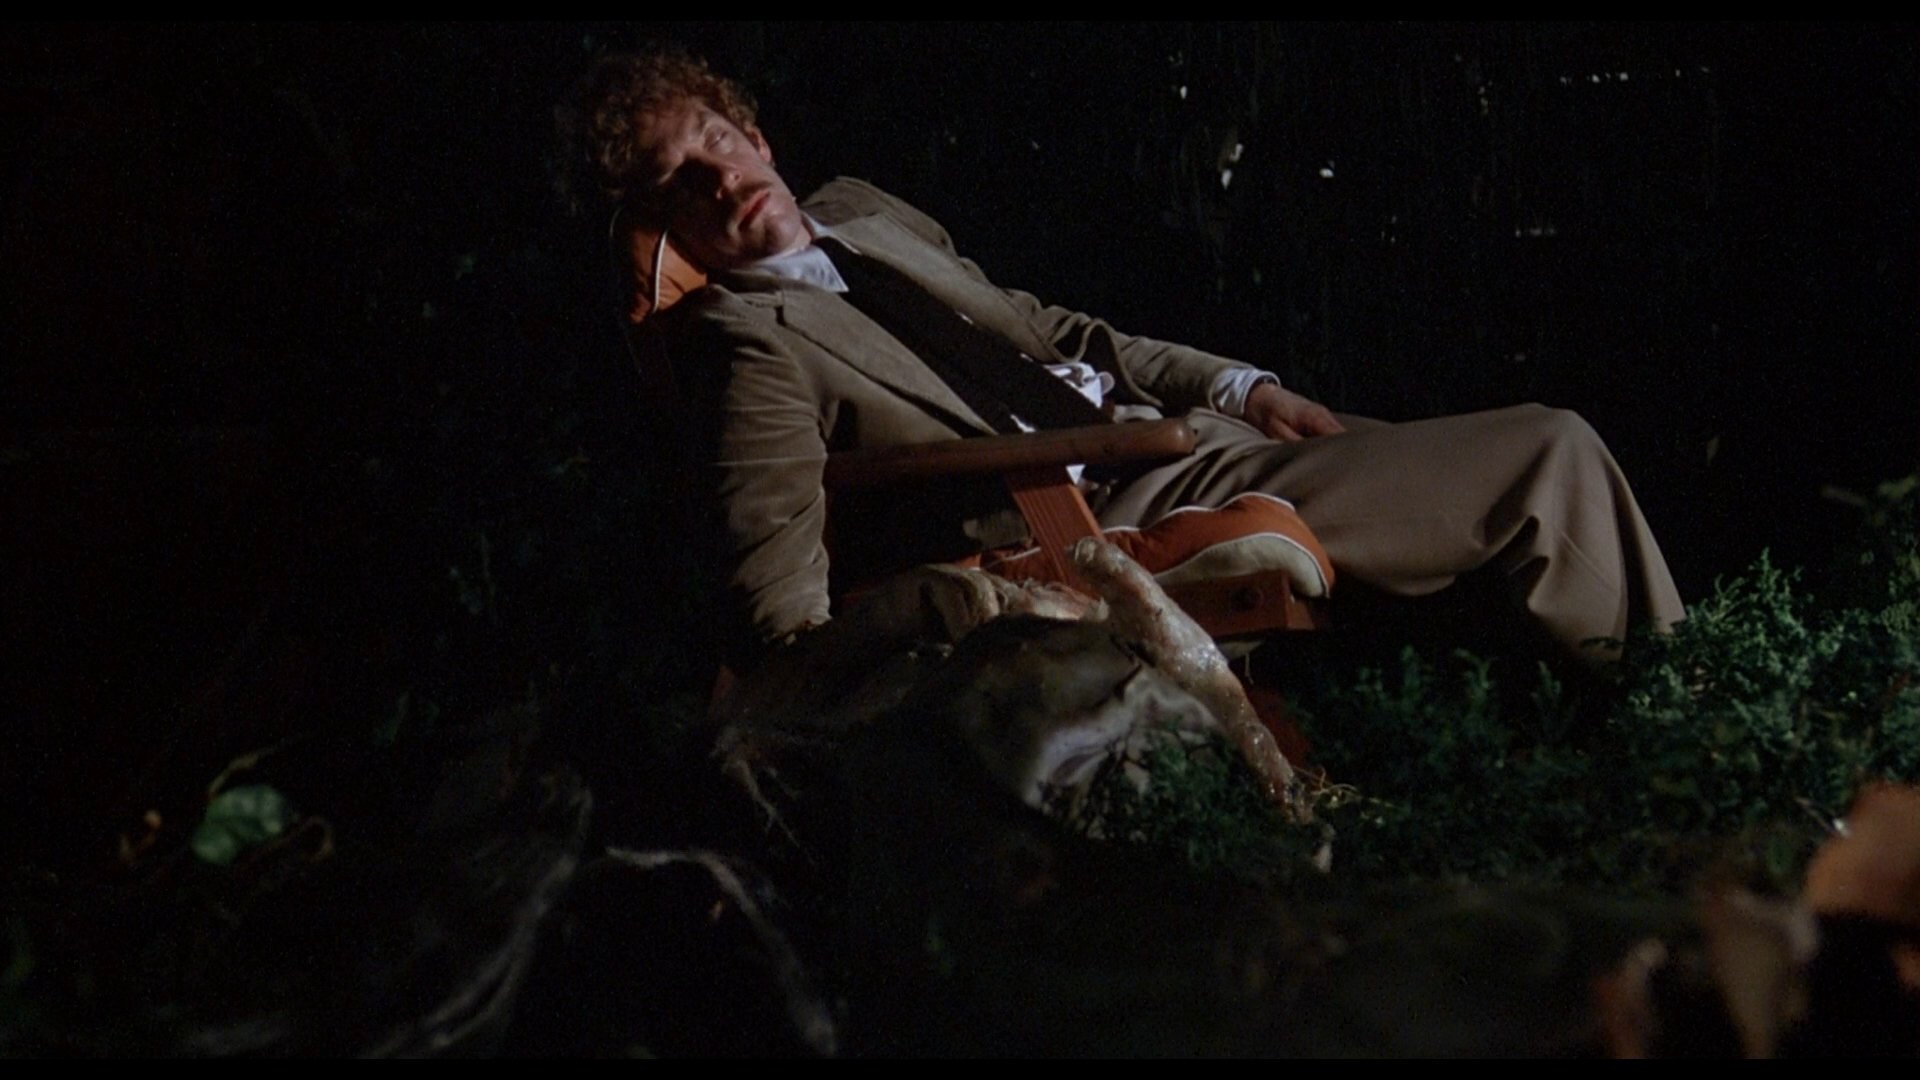 invasion of the body snatchers are One of the greatest and most influential sci-fi films of all time stars kevin  mccarthy as a doctor in a small california town whose patients are becoming  hysterical.